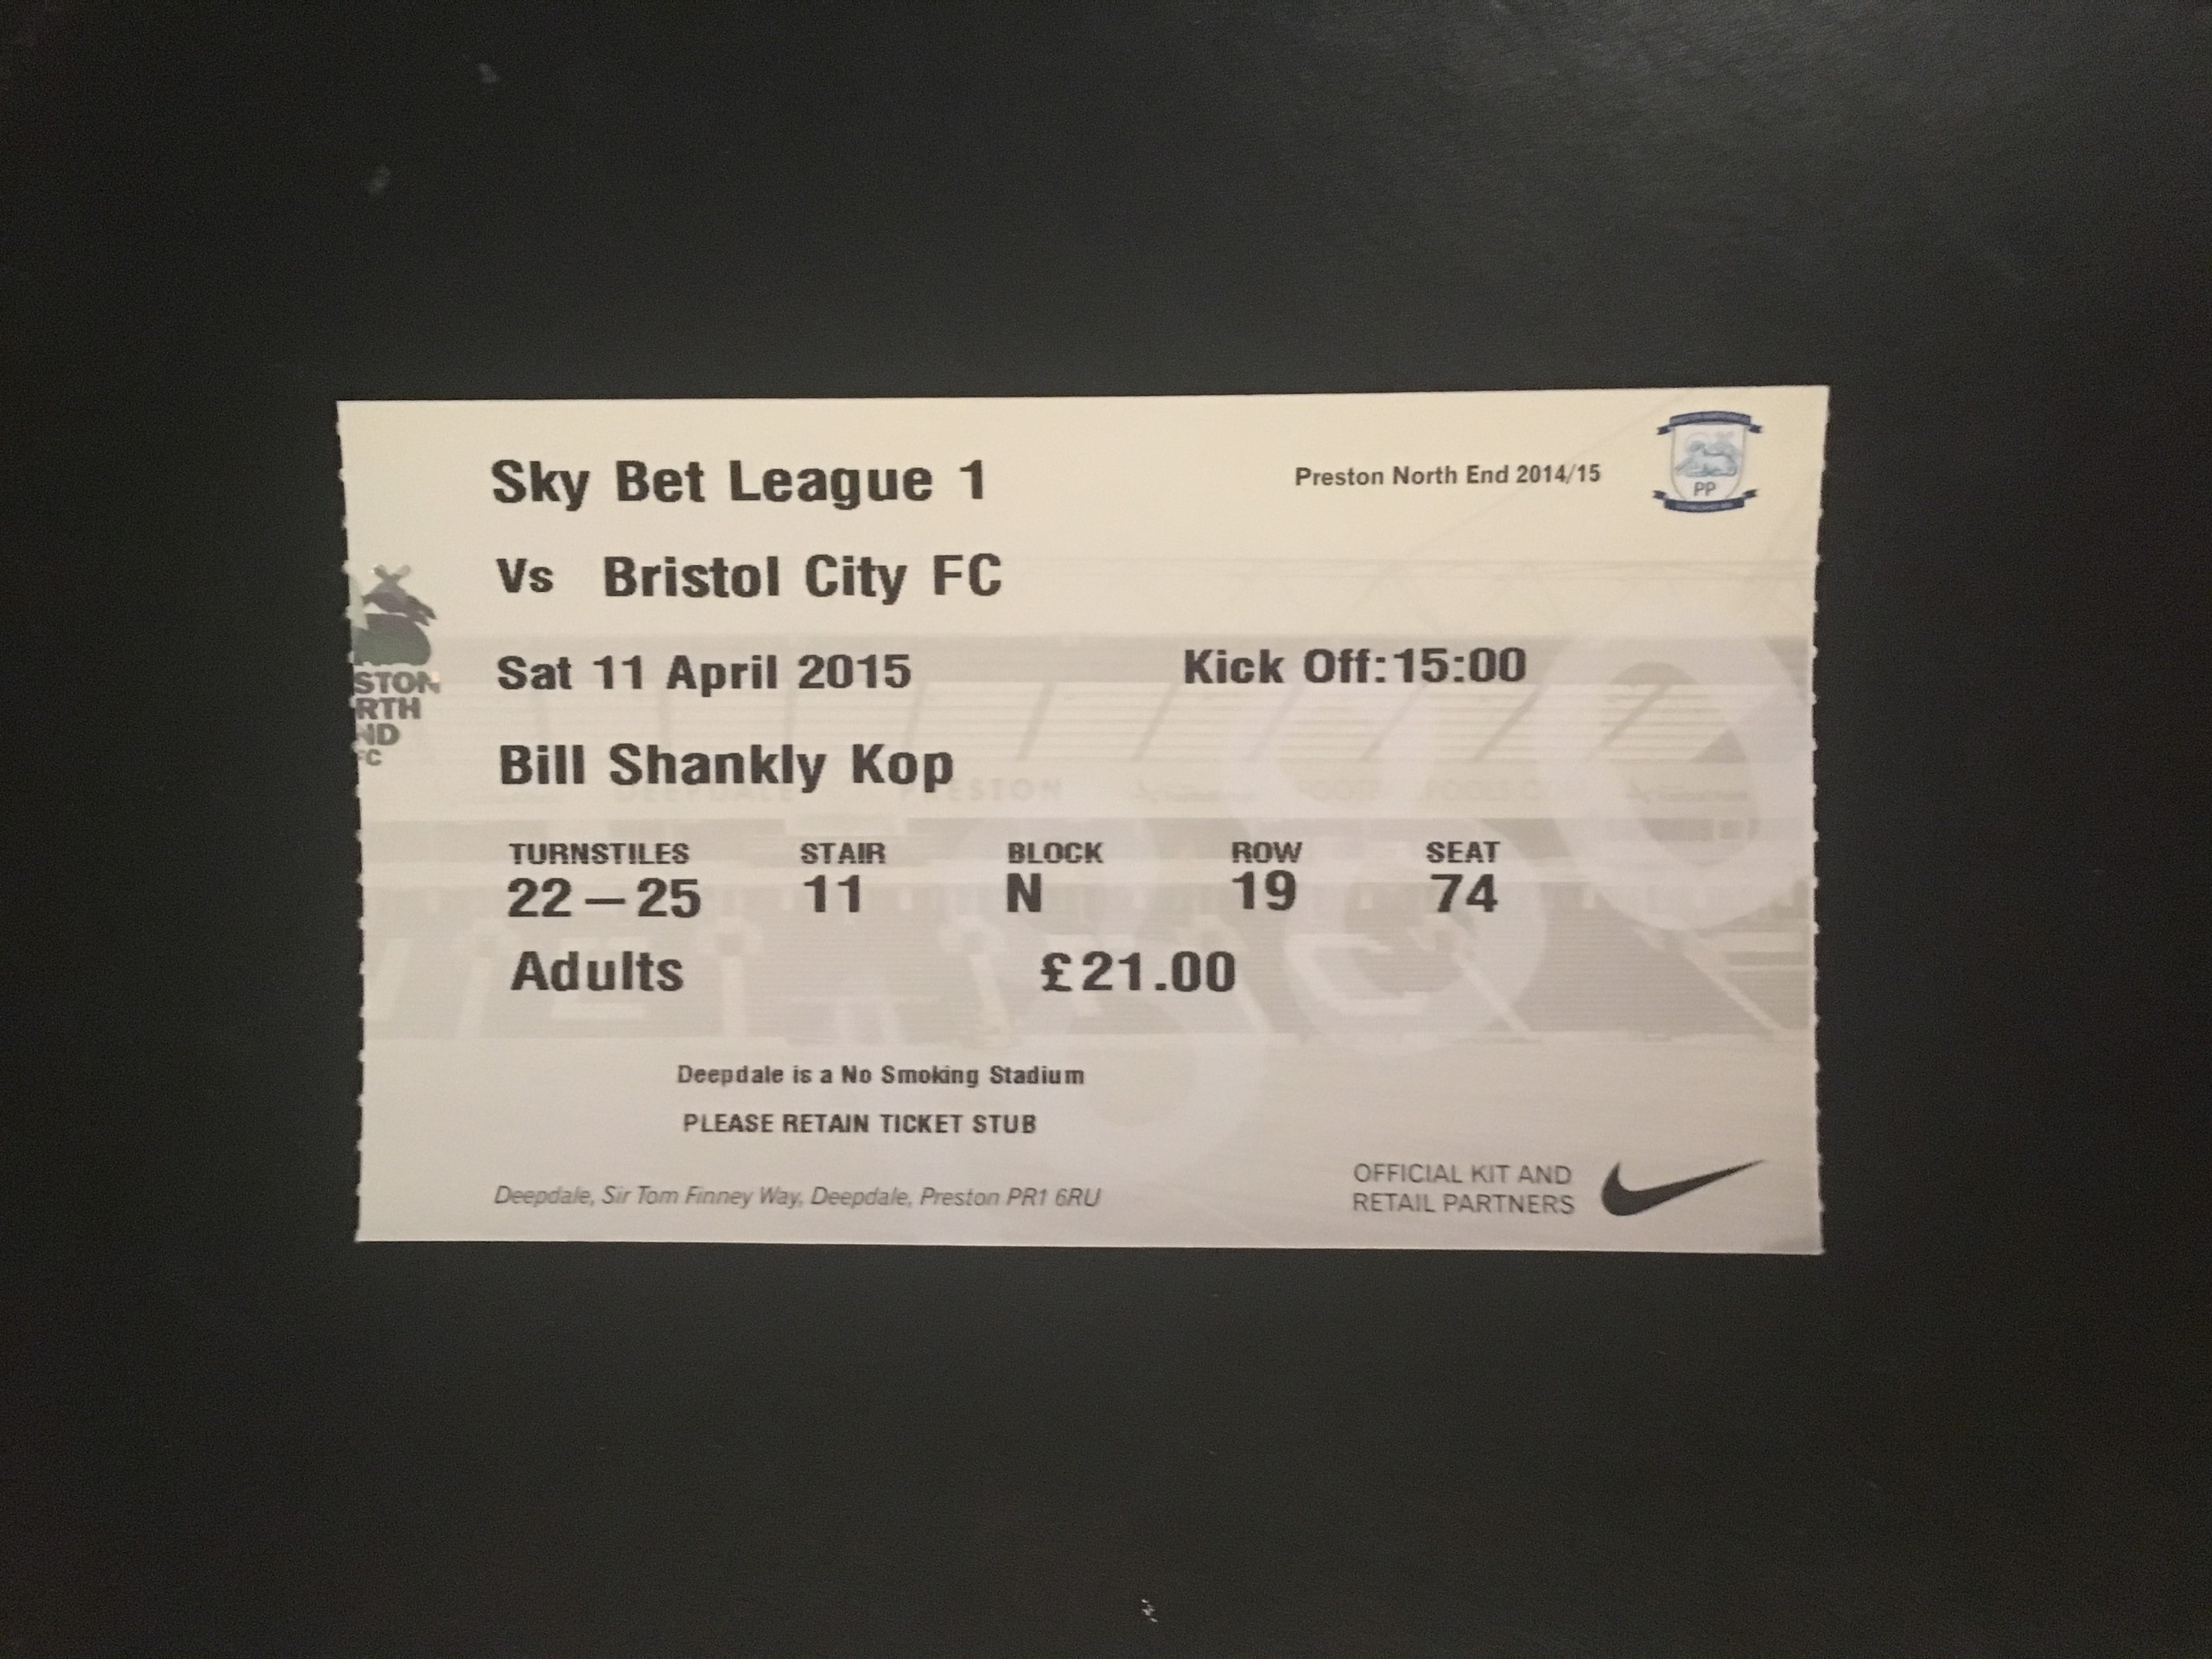 Preston North End v Bristol City 11-04-2015 Ticket